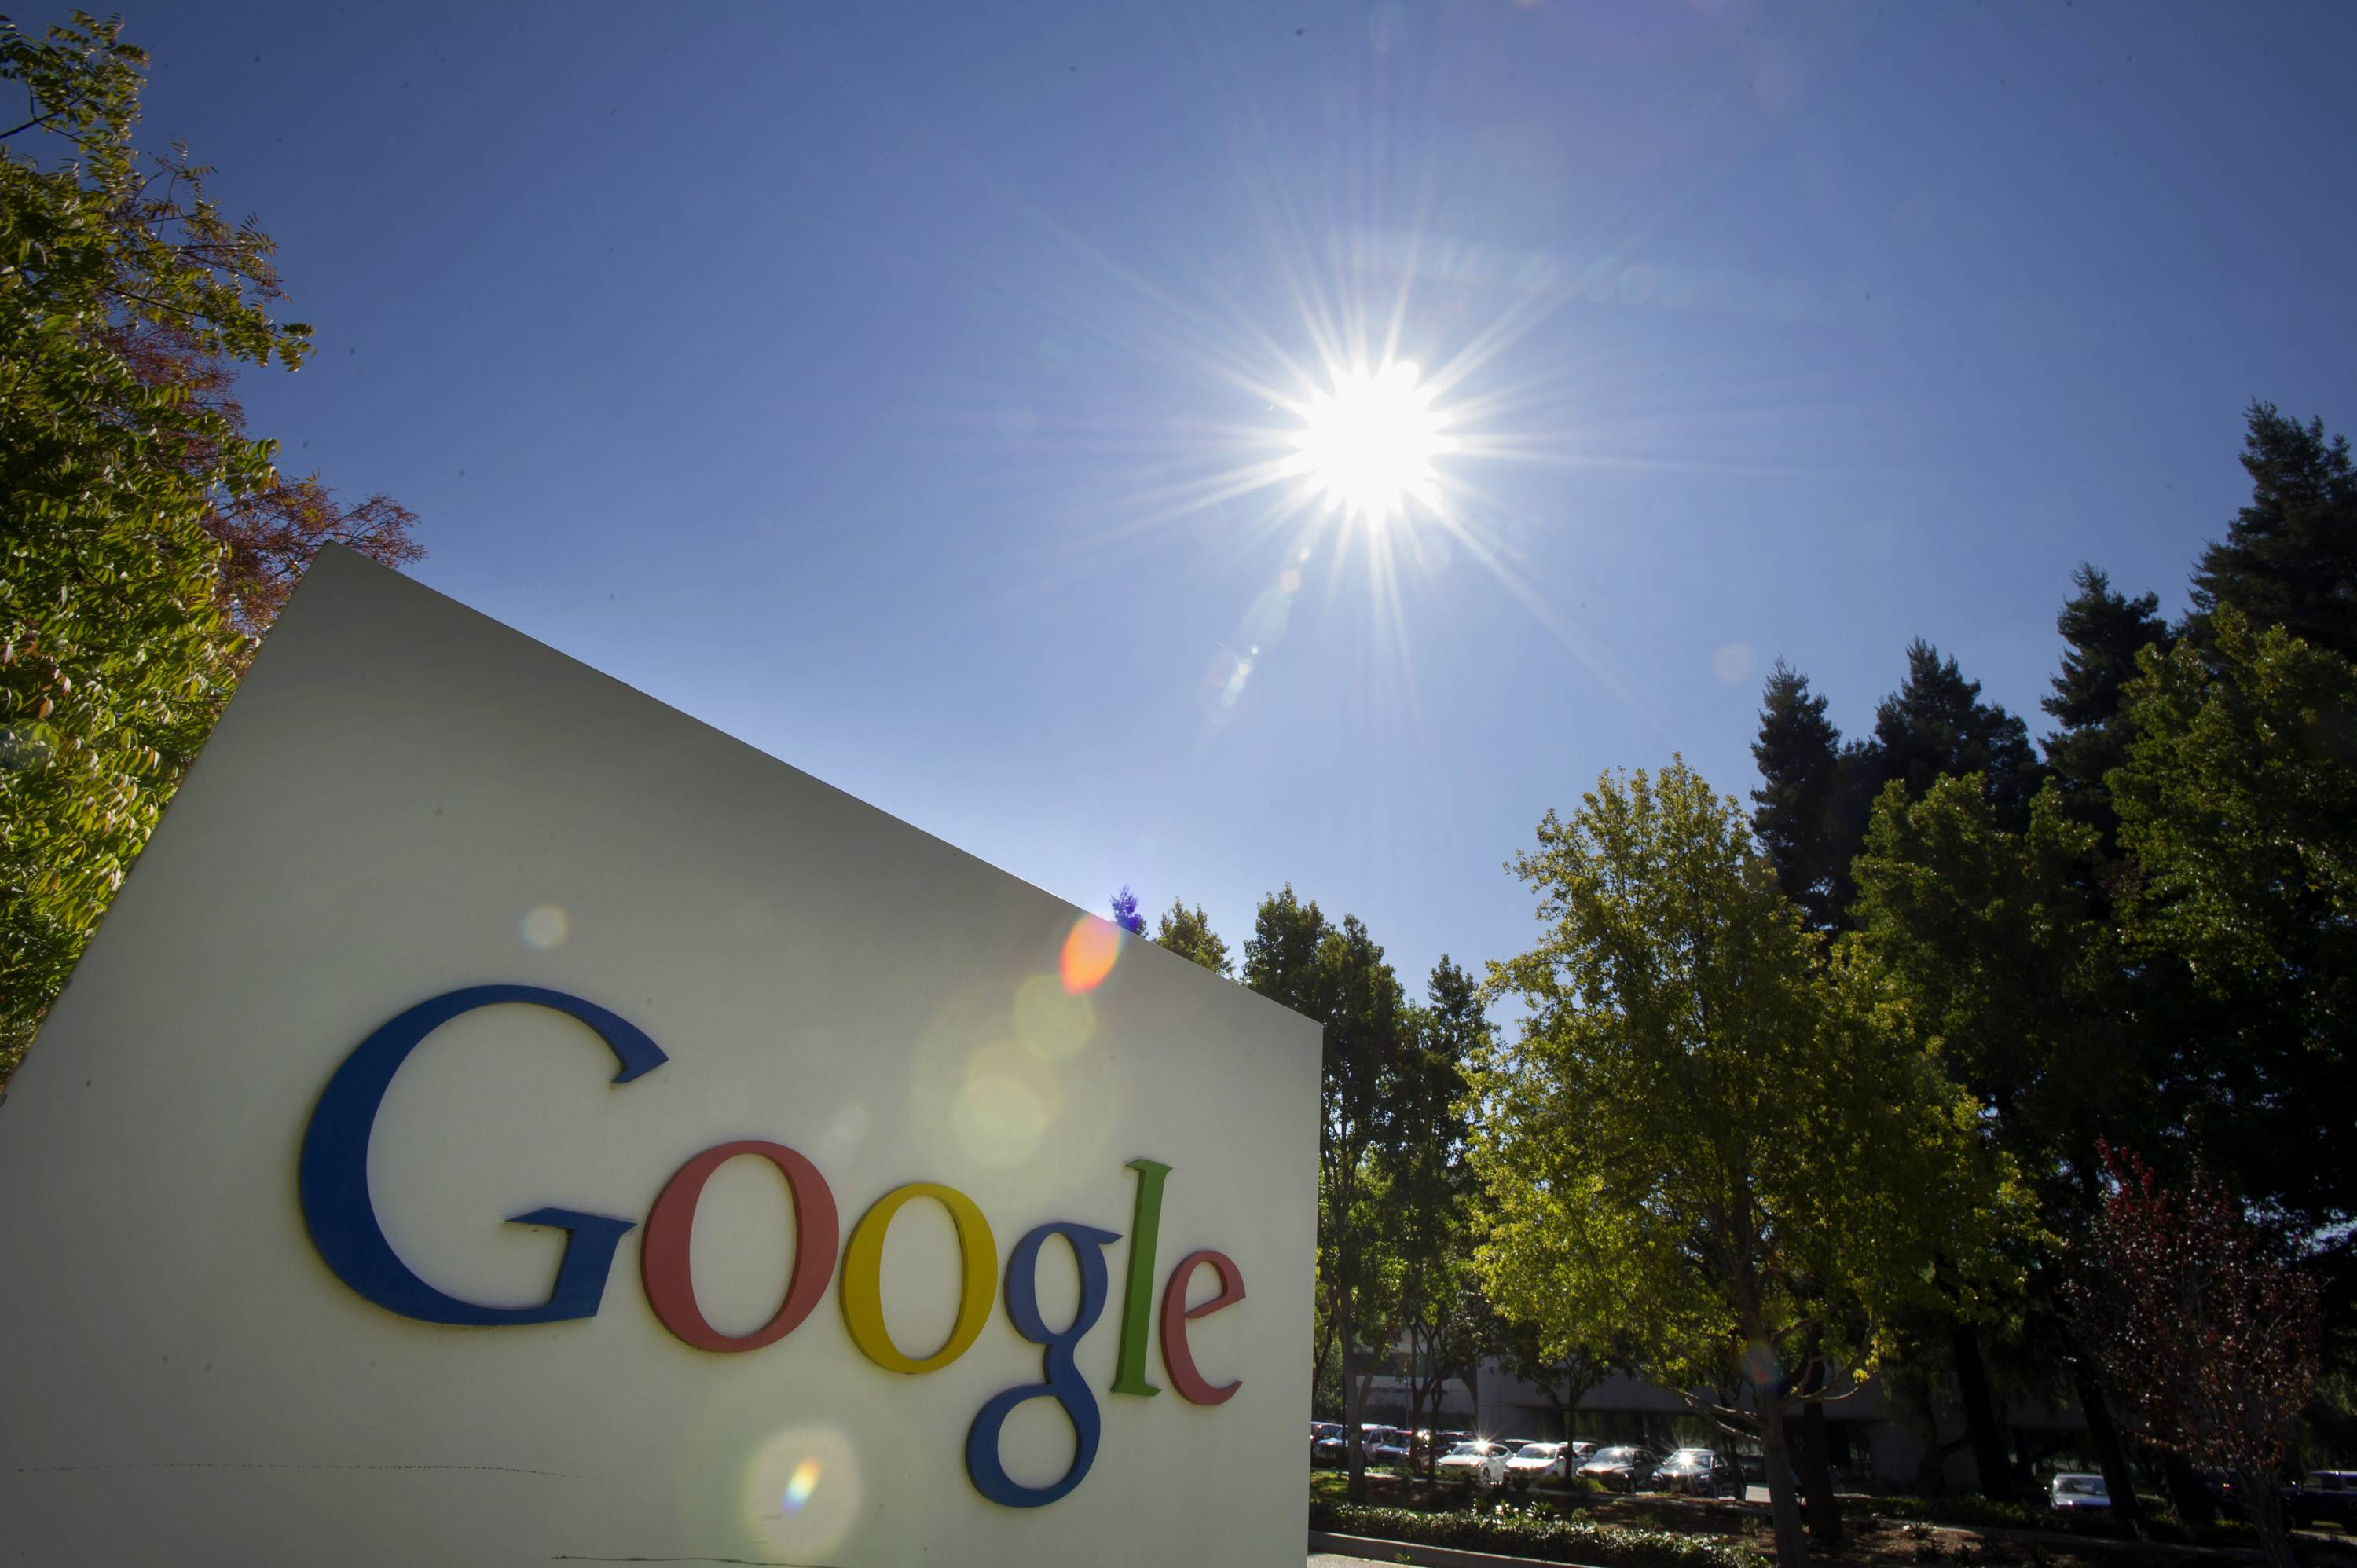 Google subsidiary to run Moffett Federal Airfield